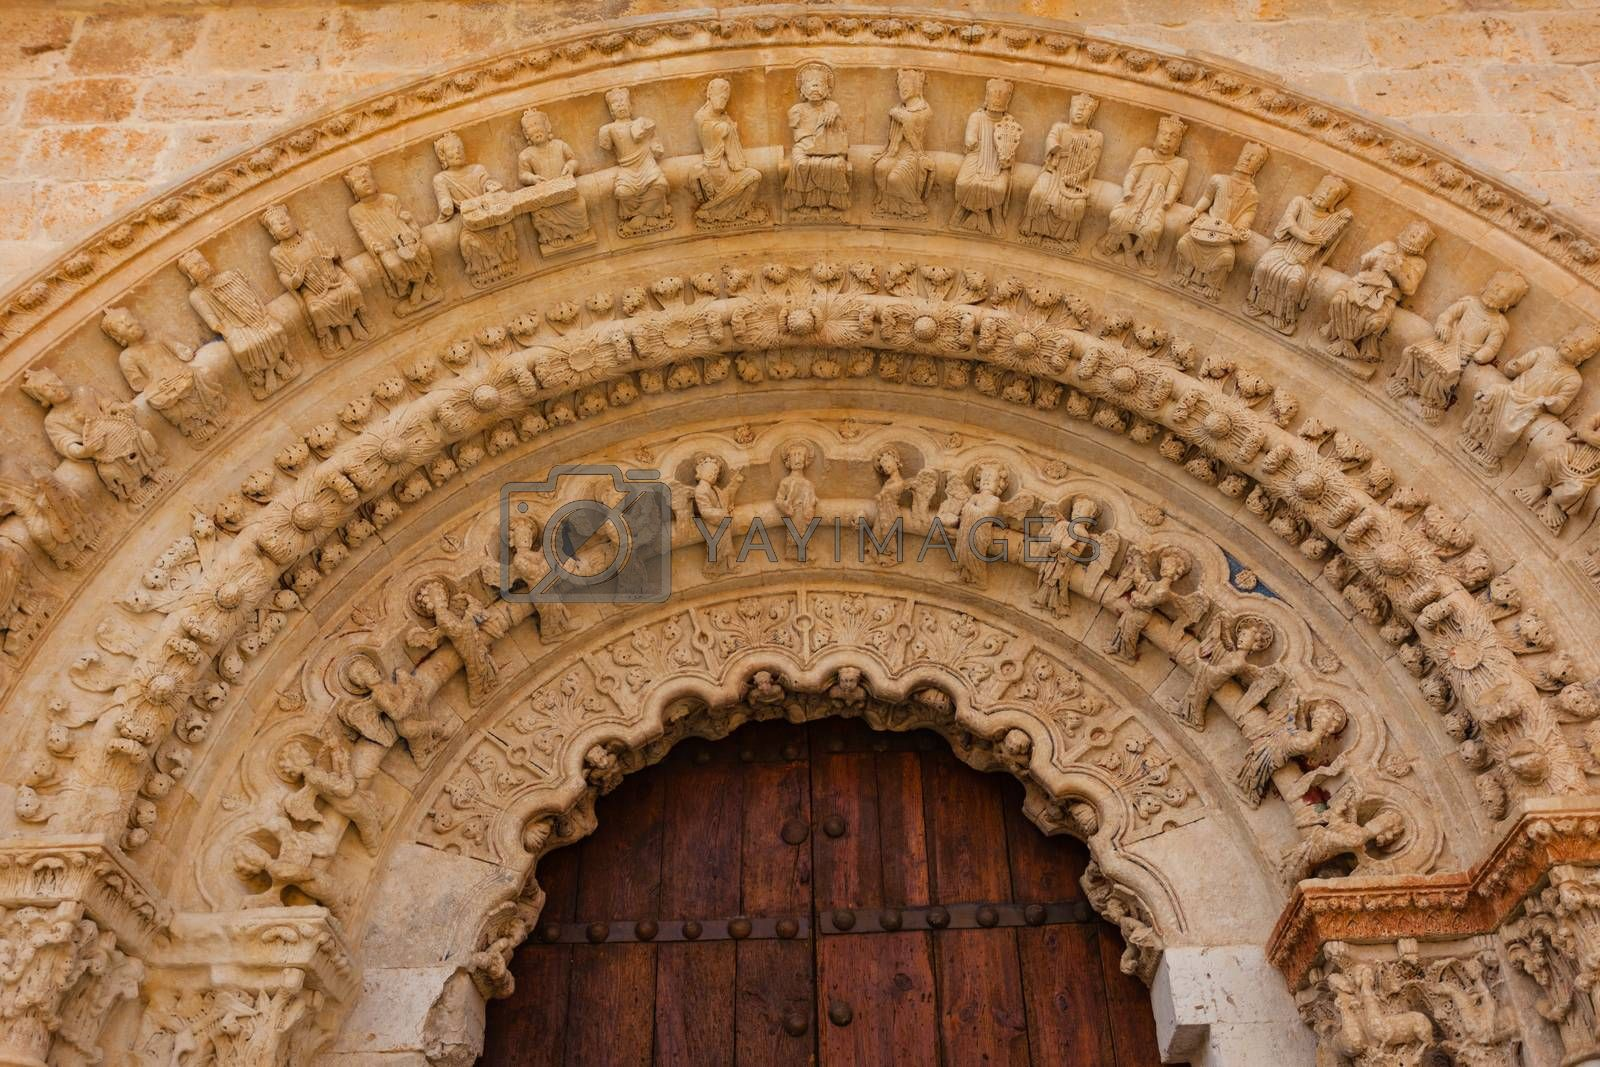 closeup view of romanesque archivolts and voussoir detail from the collegiate church of the town of Toro in Zamora Spain